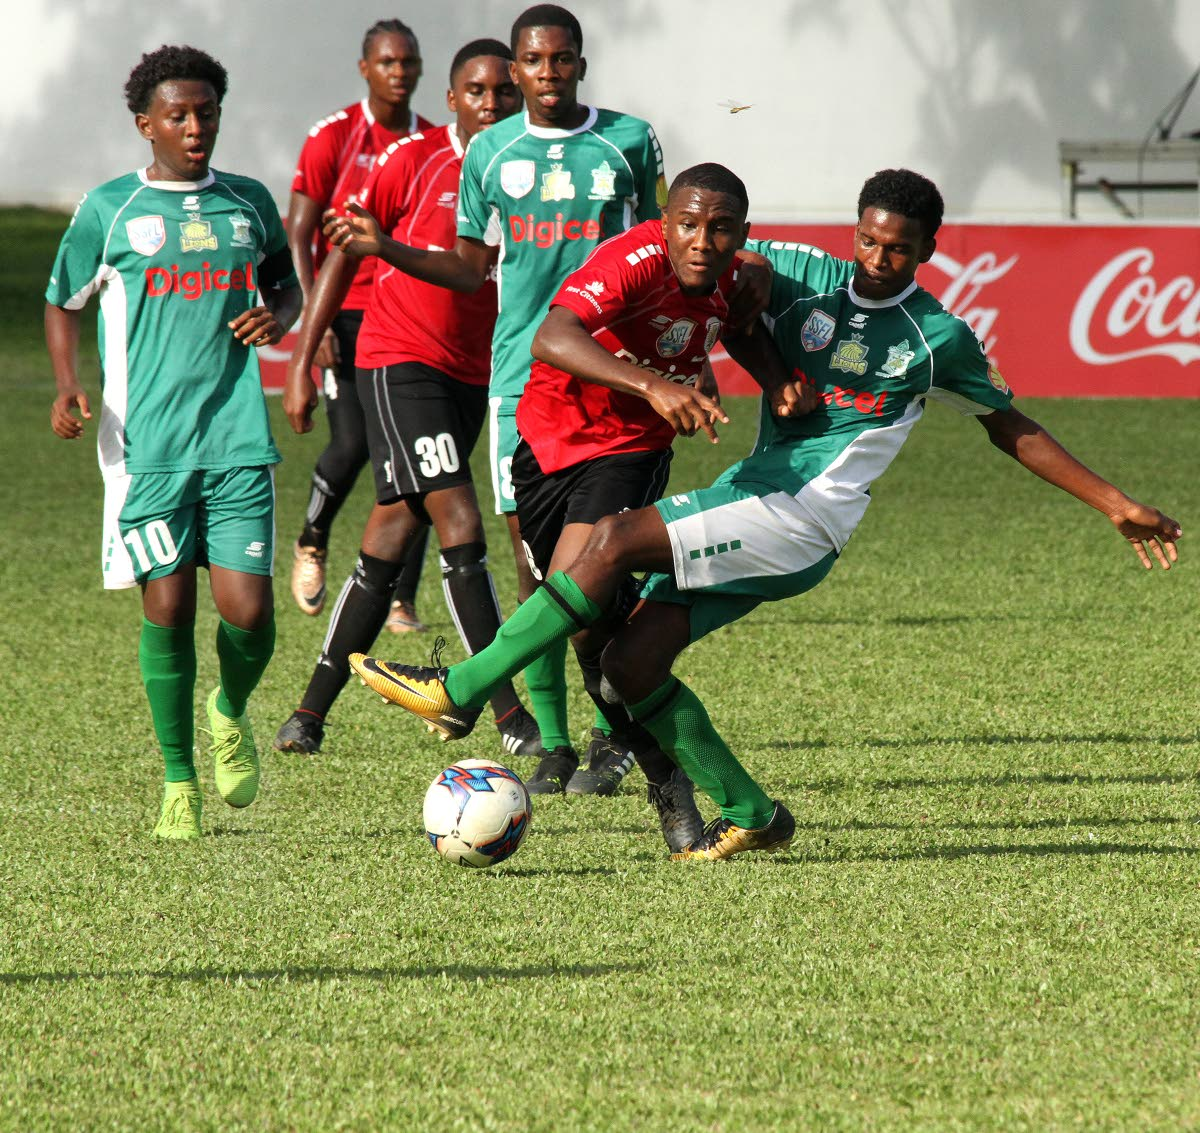 St Anthony's Romario Burke, second from right, is tackled as he makes a run against Trinity College in the Coca Cola North Zone Intercol final yesterday at CIC Ground, St Clair.